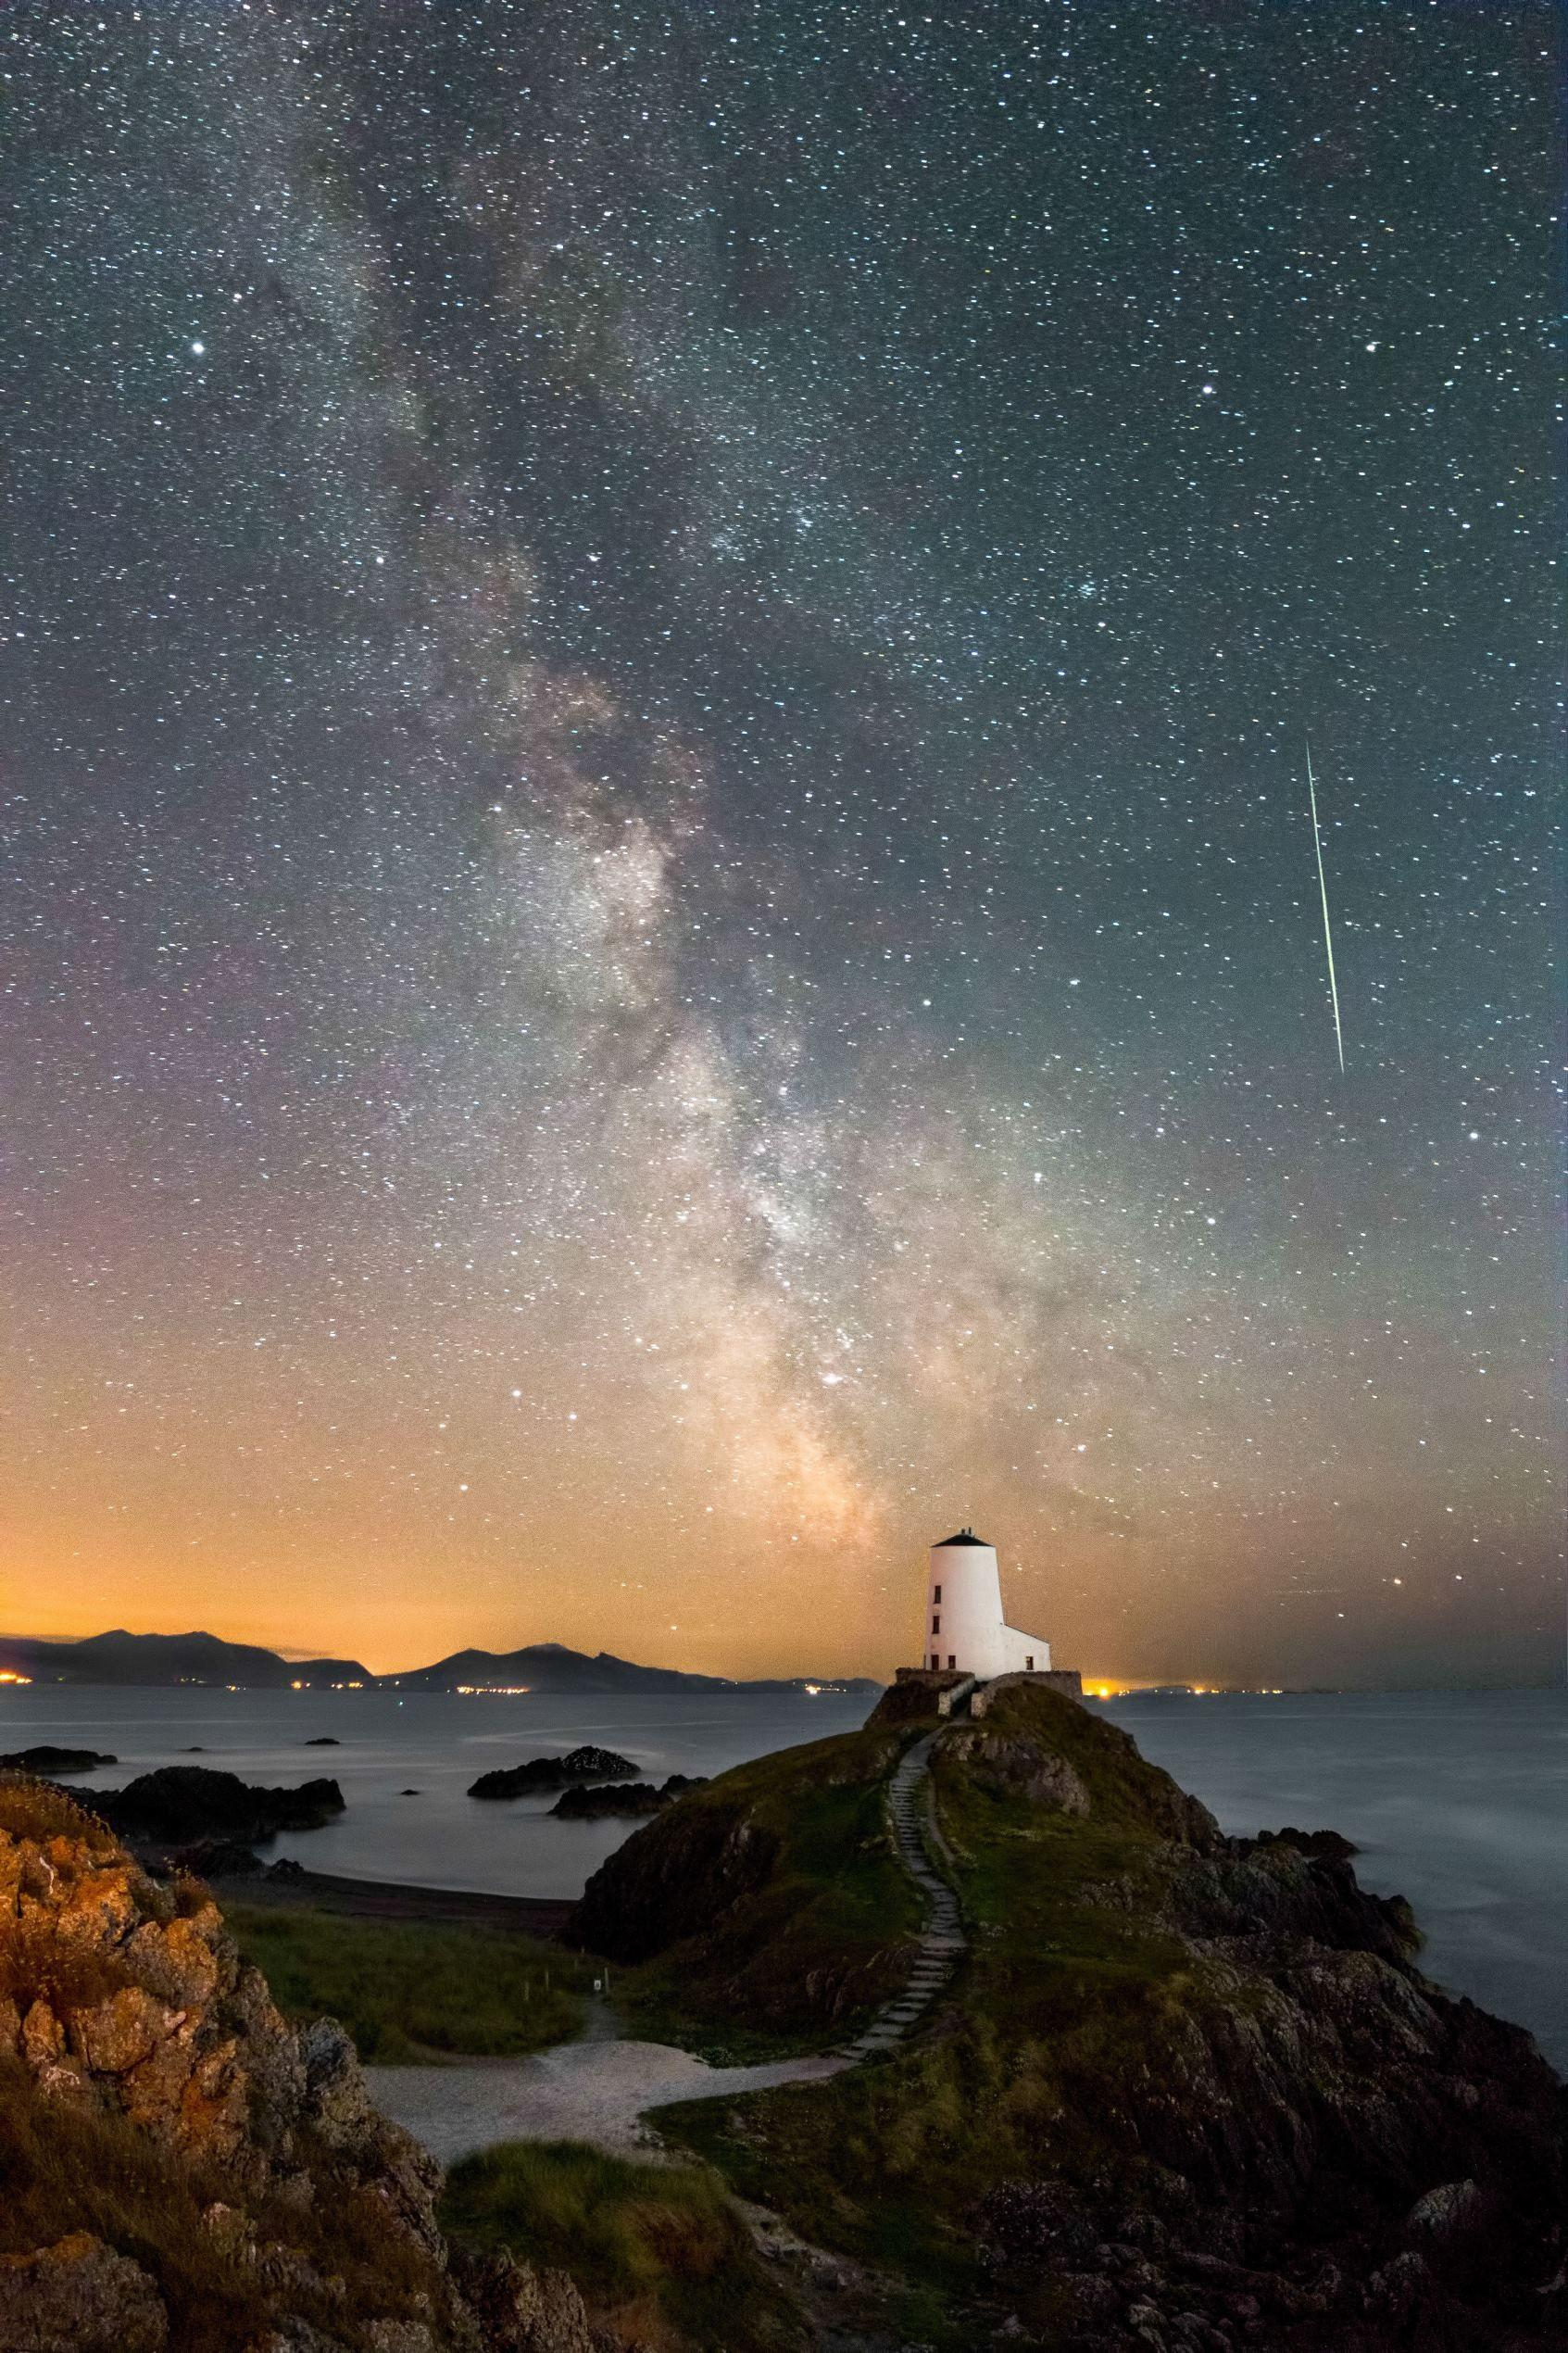 Magical meteors: Perseid shower peaks | Beautiful Sites ...